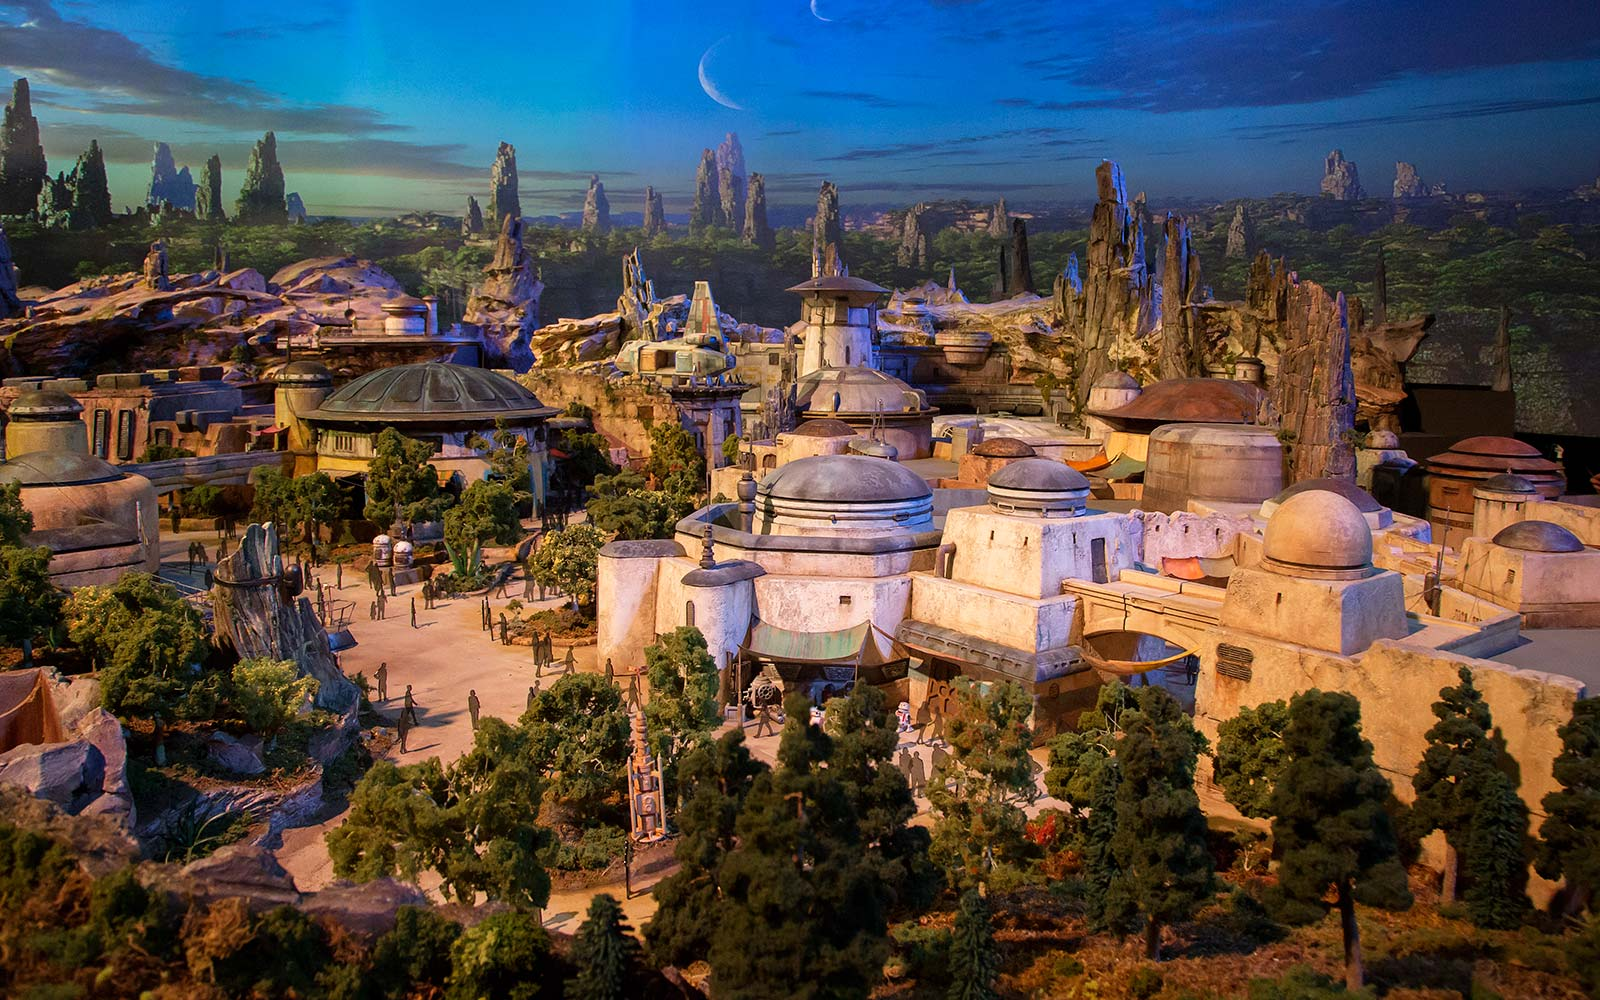 The Definitive Timeline Counting Down to the Opening of Disney's 'Star Wars' Lands